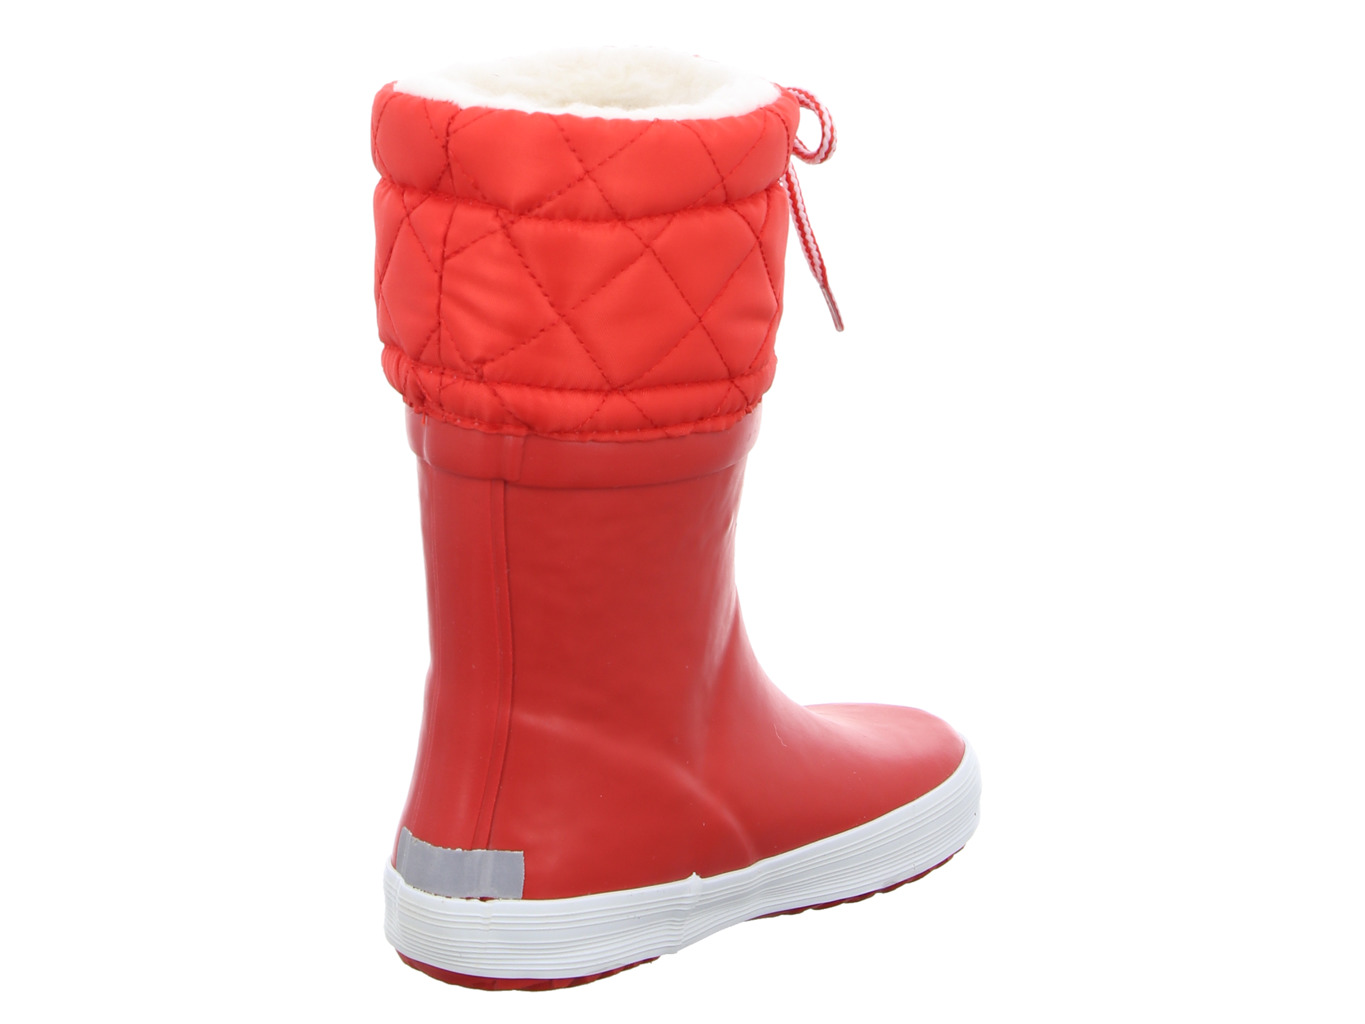 aigle_giboulee_rot_24538_rouge_2106